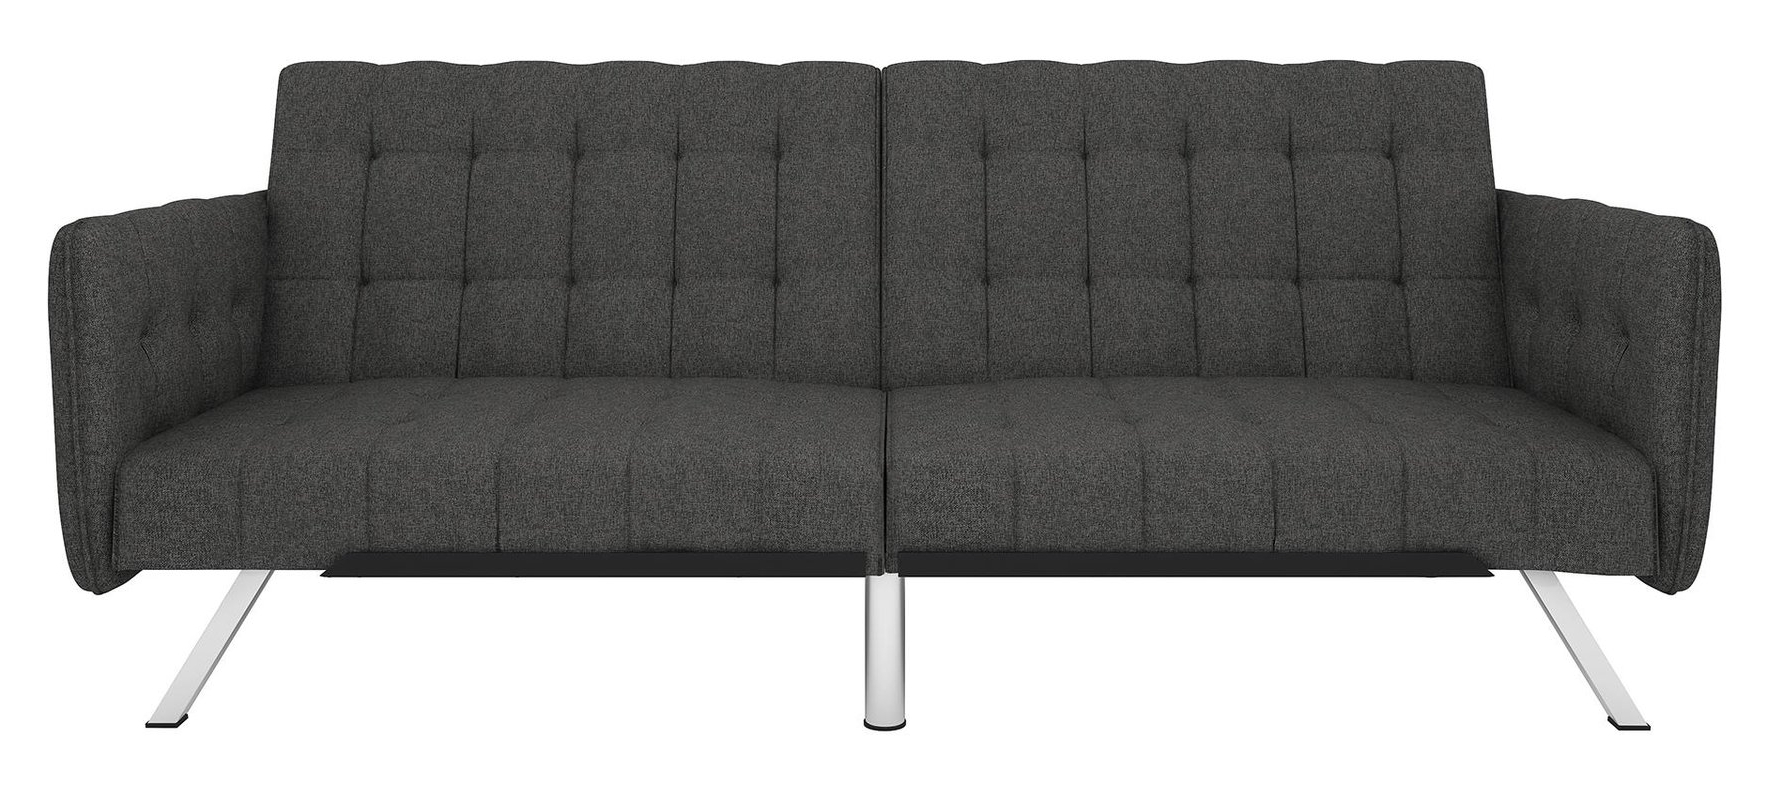 Joss & Main Regarding Convertible Sofas (View 10 of 20)